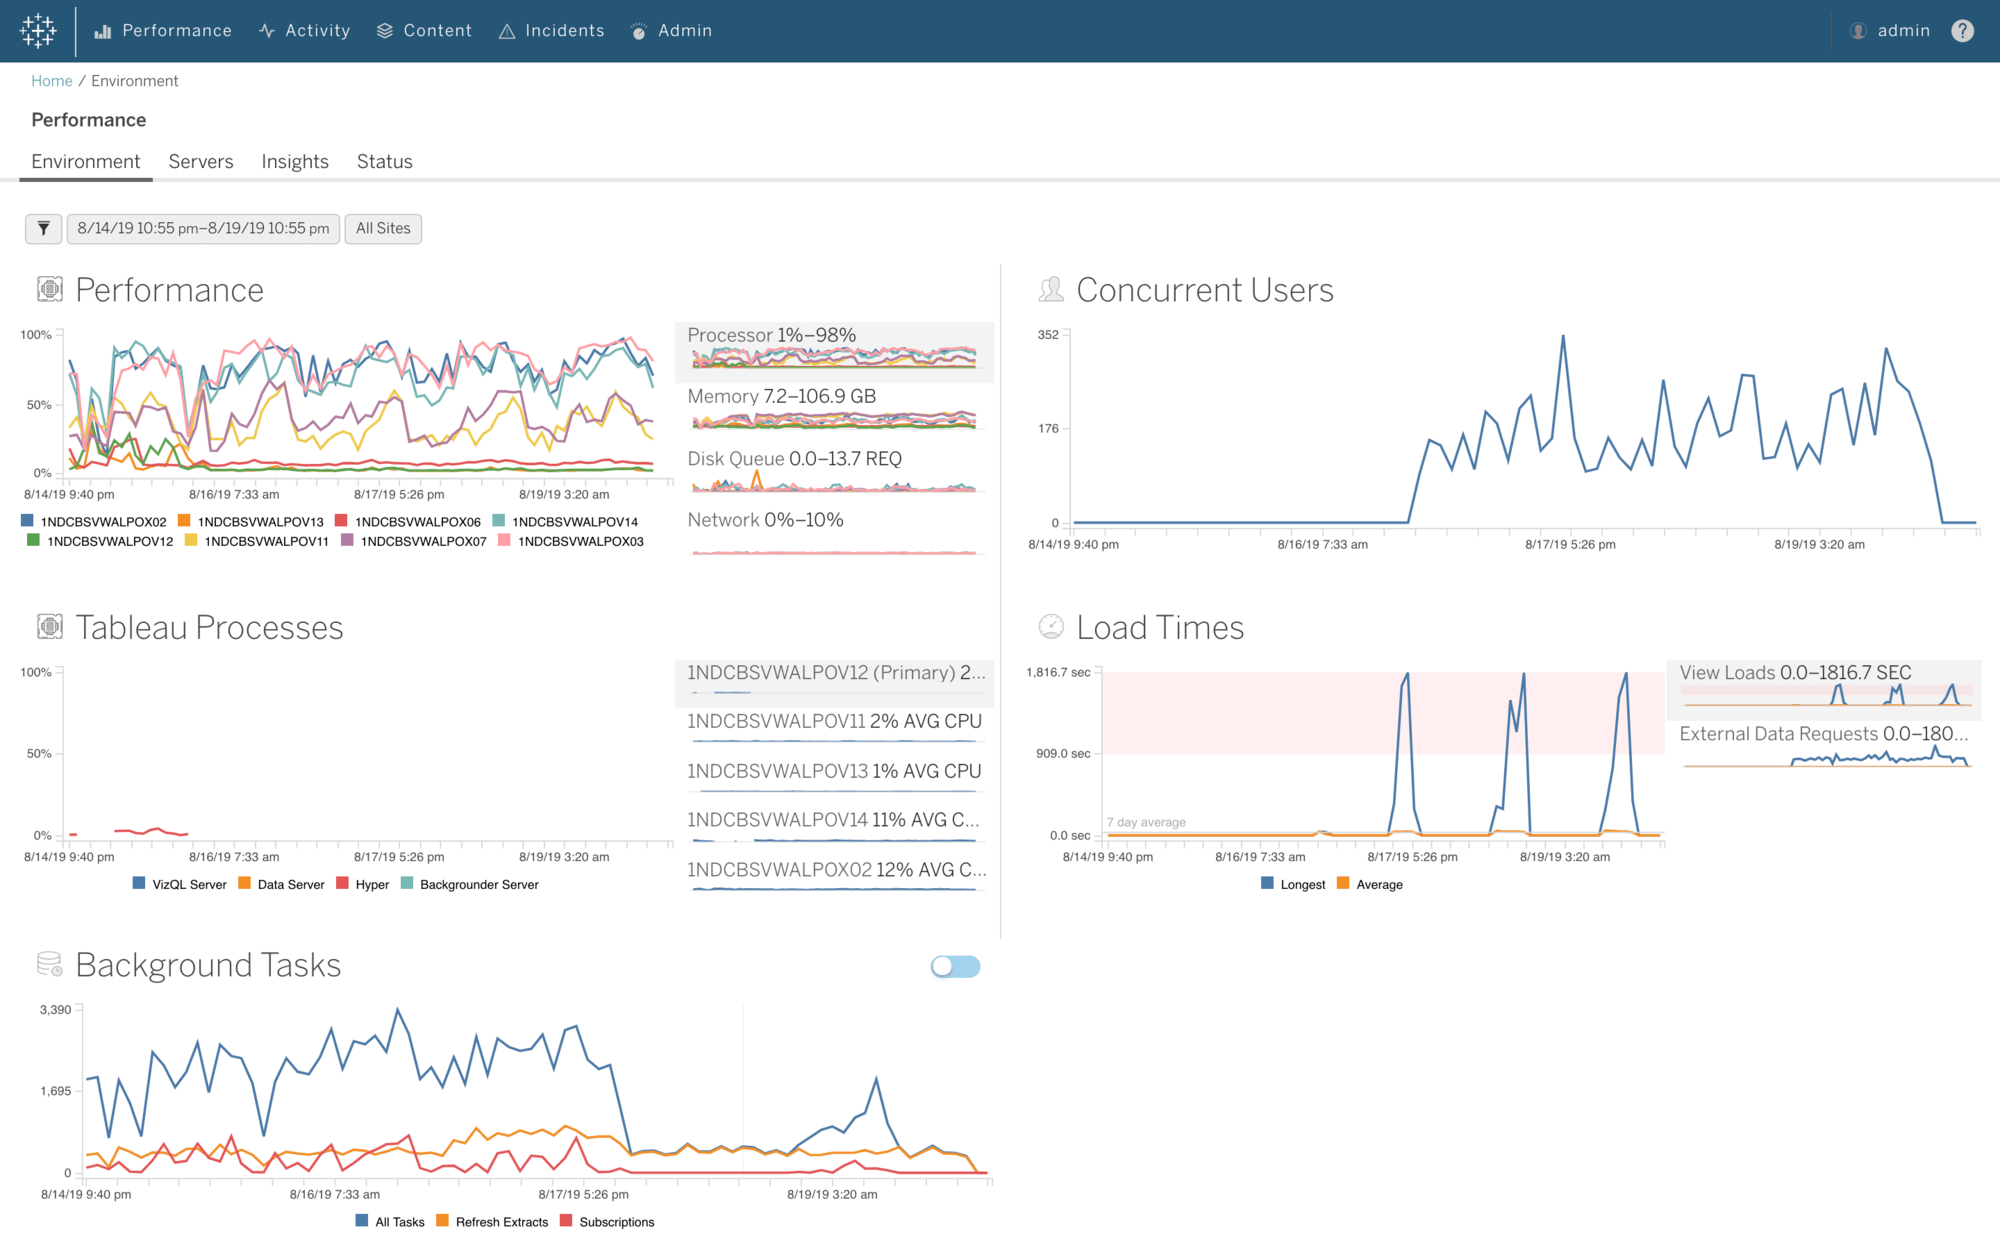 Learn more about the Tableau Server Management add on here